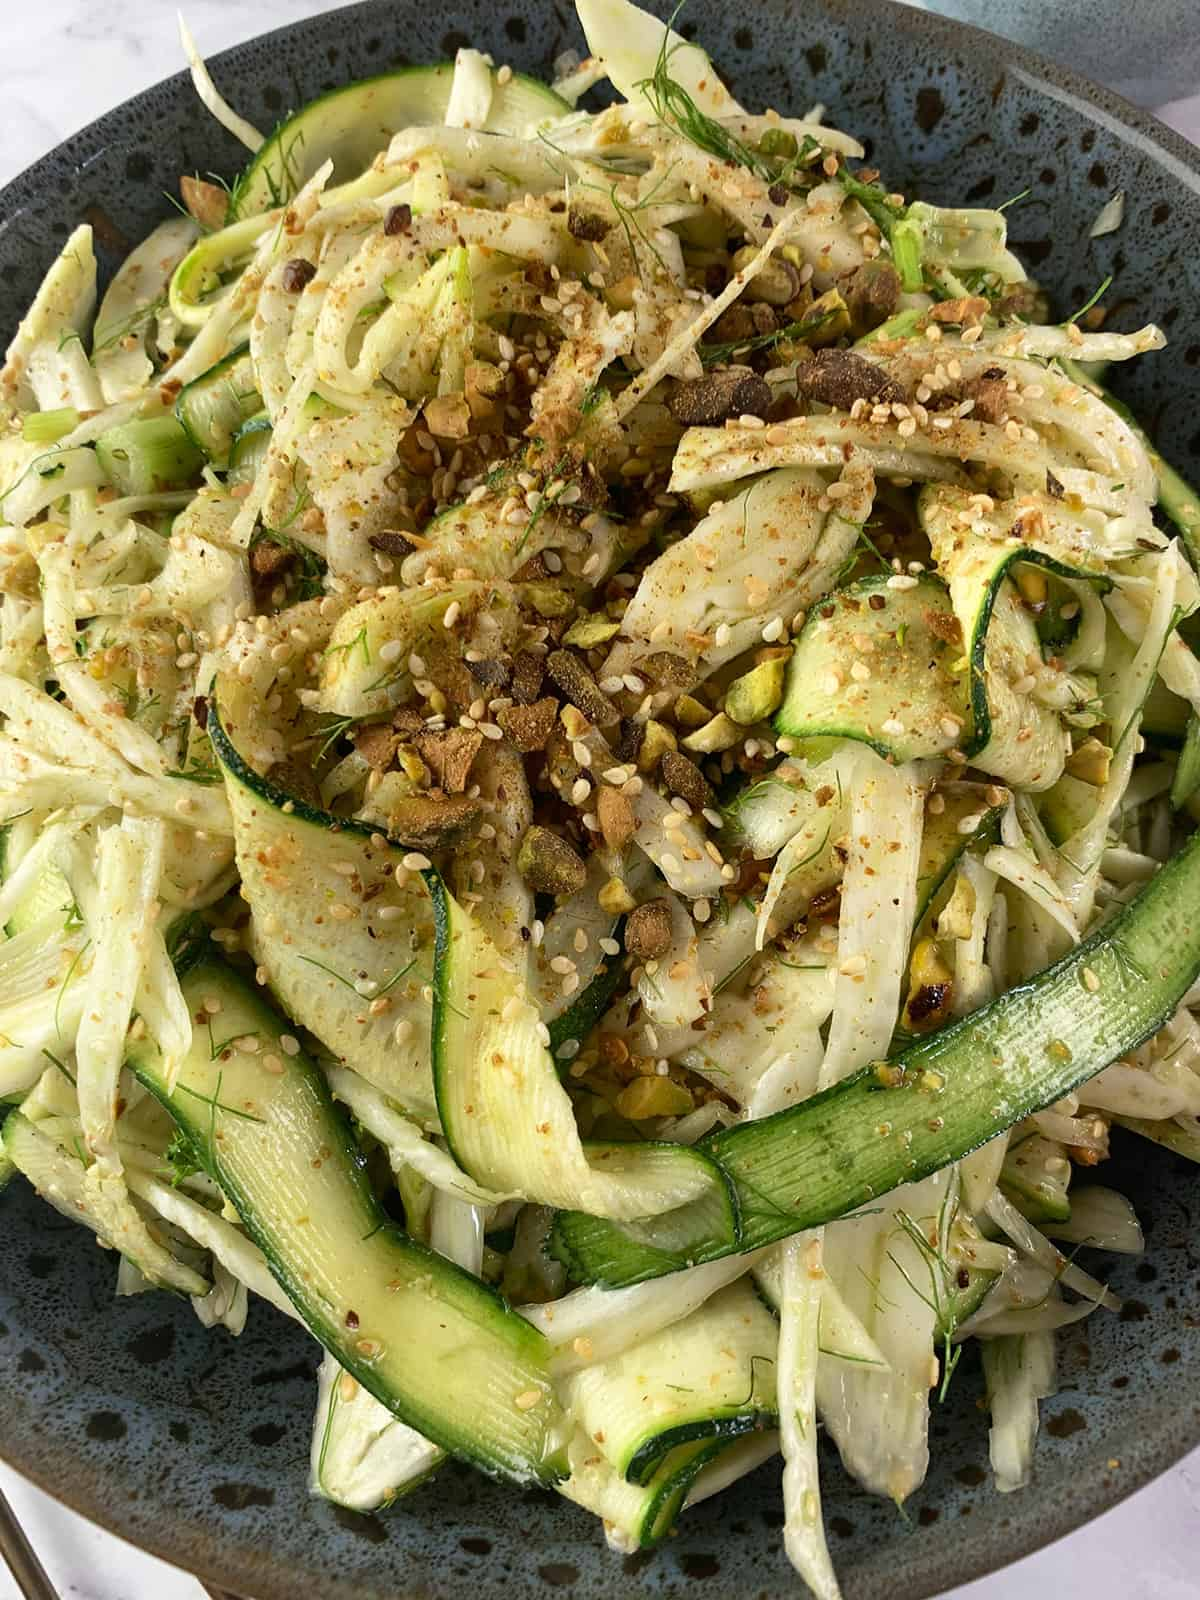 CLOSE UP OF SHAVED FENNEL SALAD IN PORTRAIT